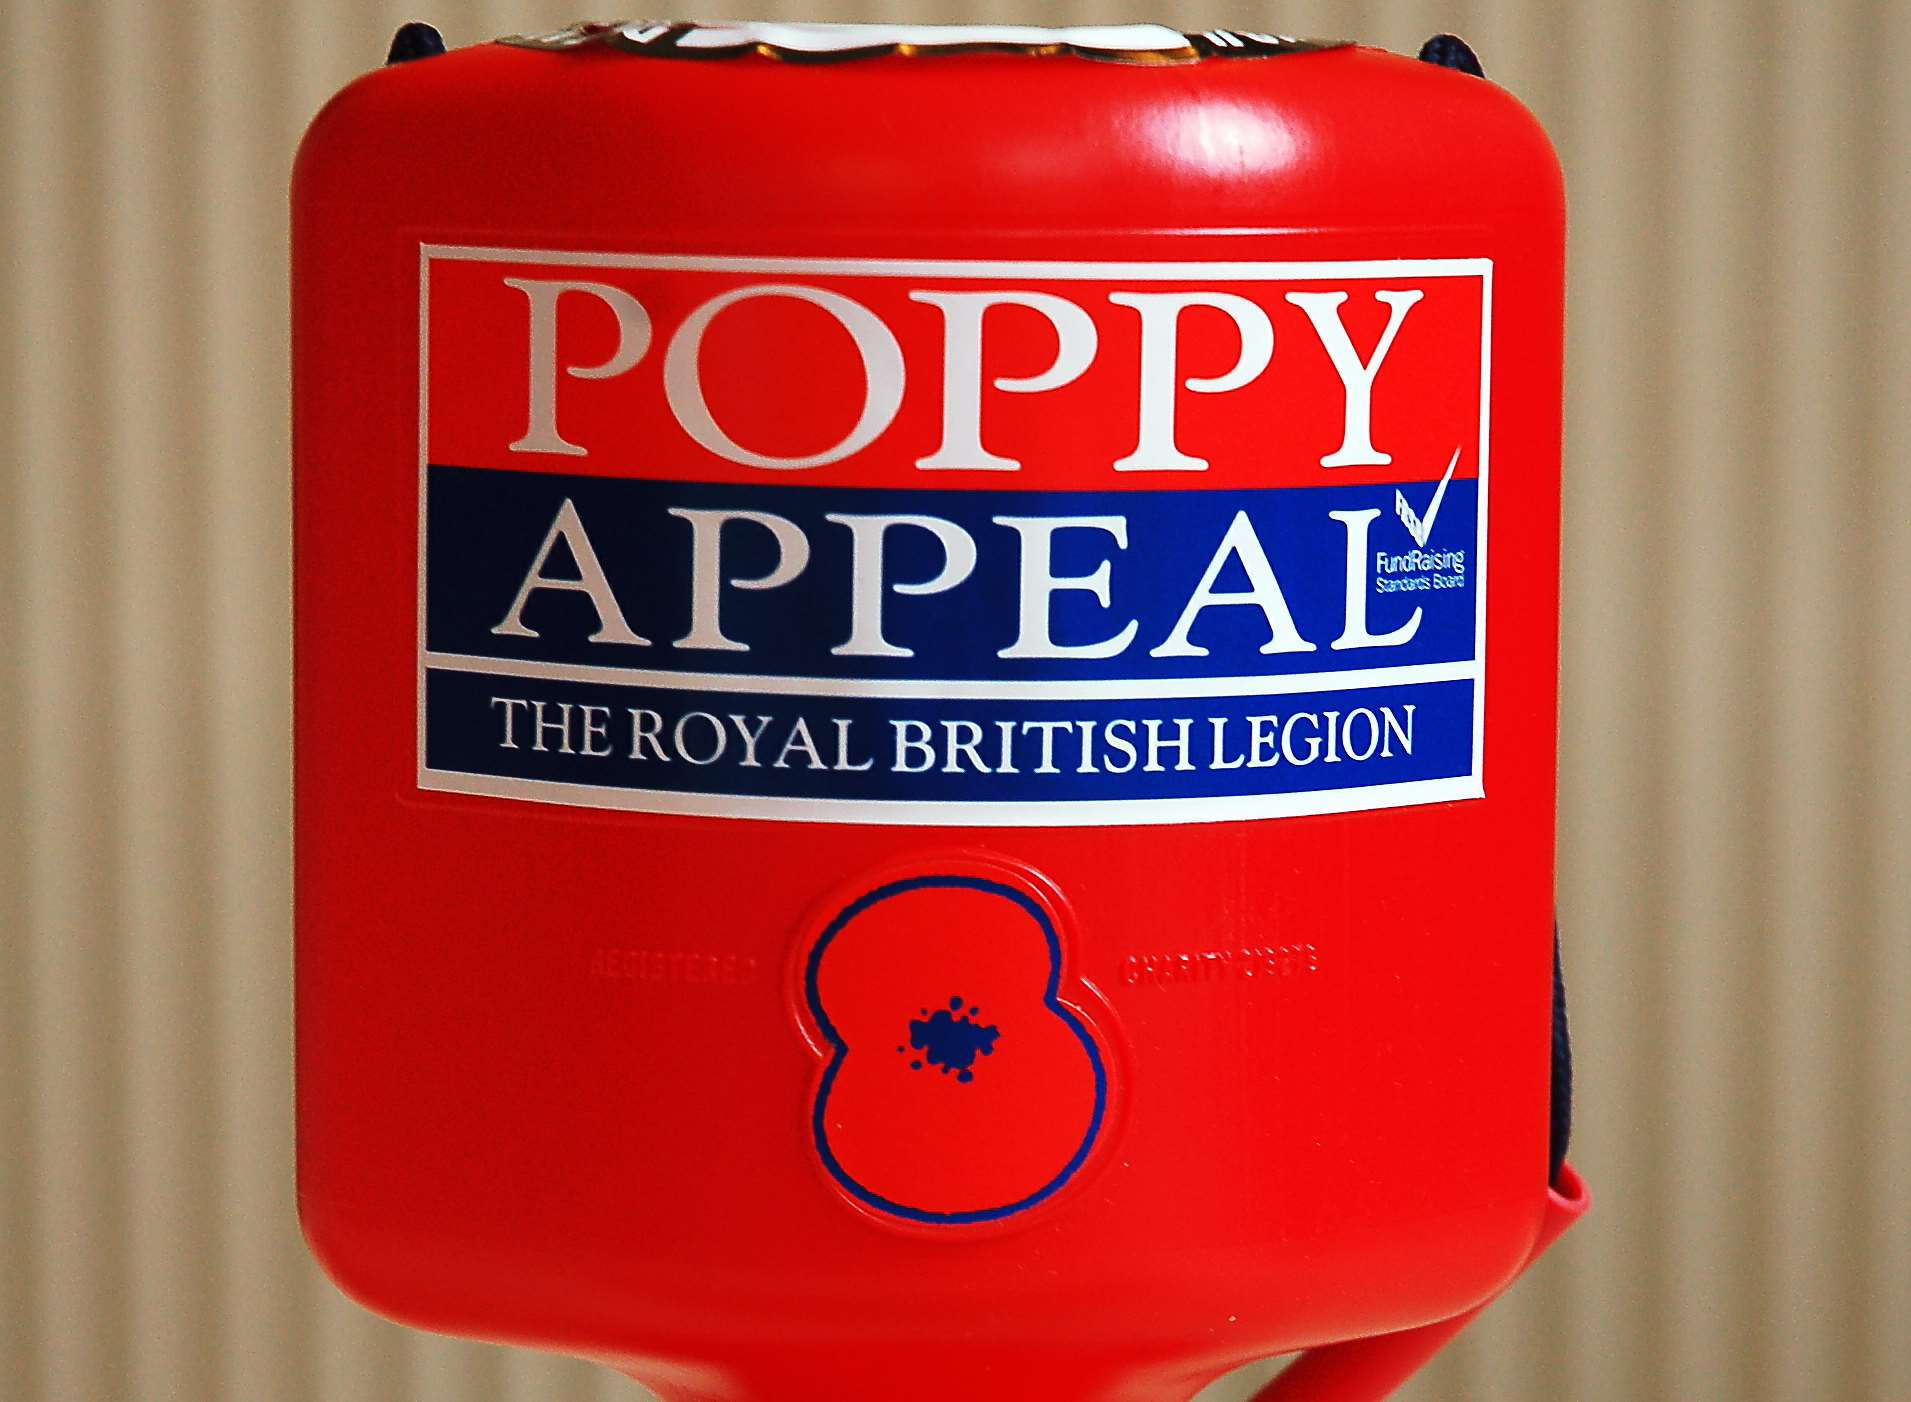 The money was meant to go towards the Poppy Appeal